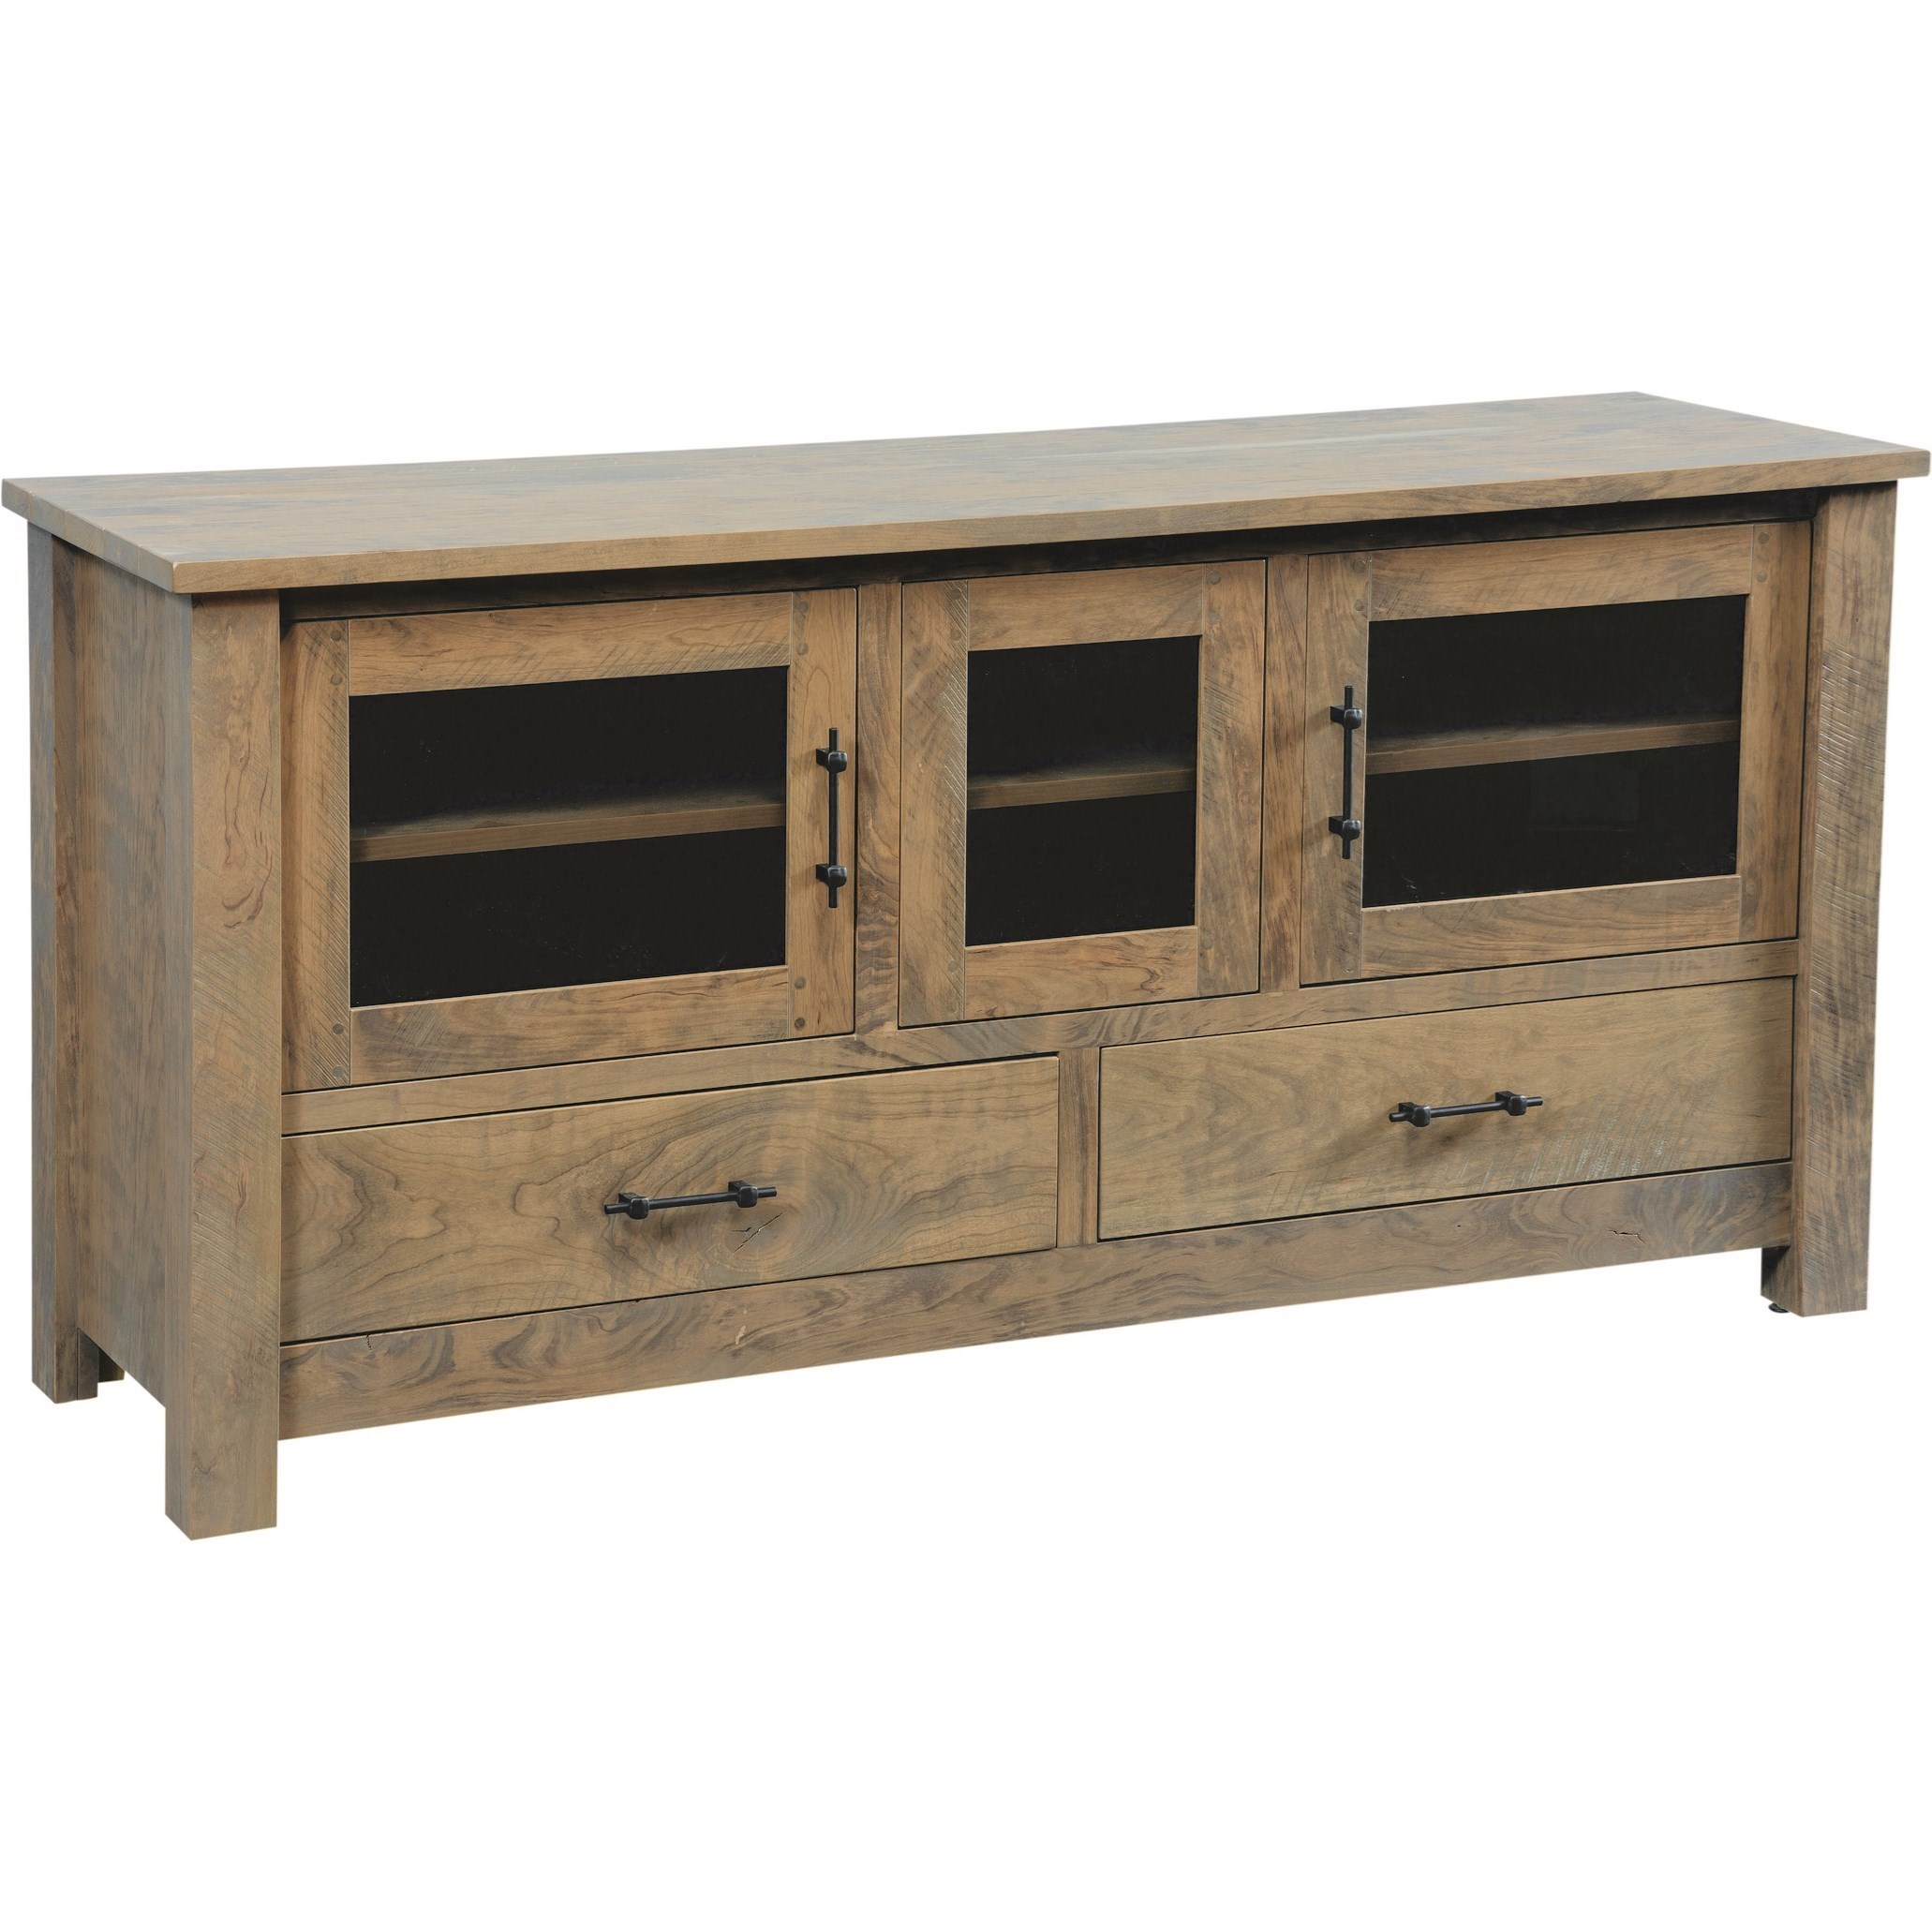 """Entertainment Terrance 63"""" TV Stand by INTEG Wood Products at Saugerties Furniture Mart"""